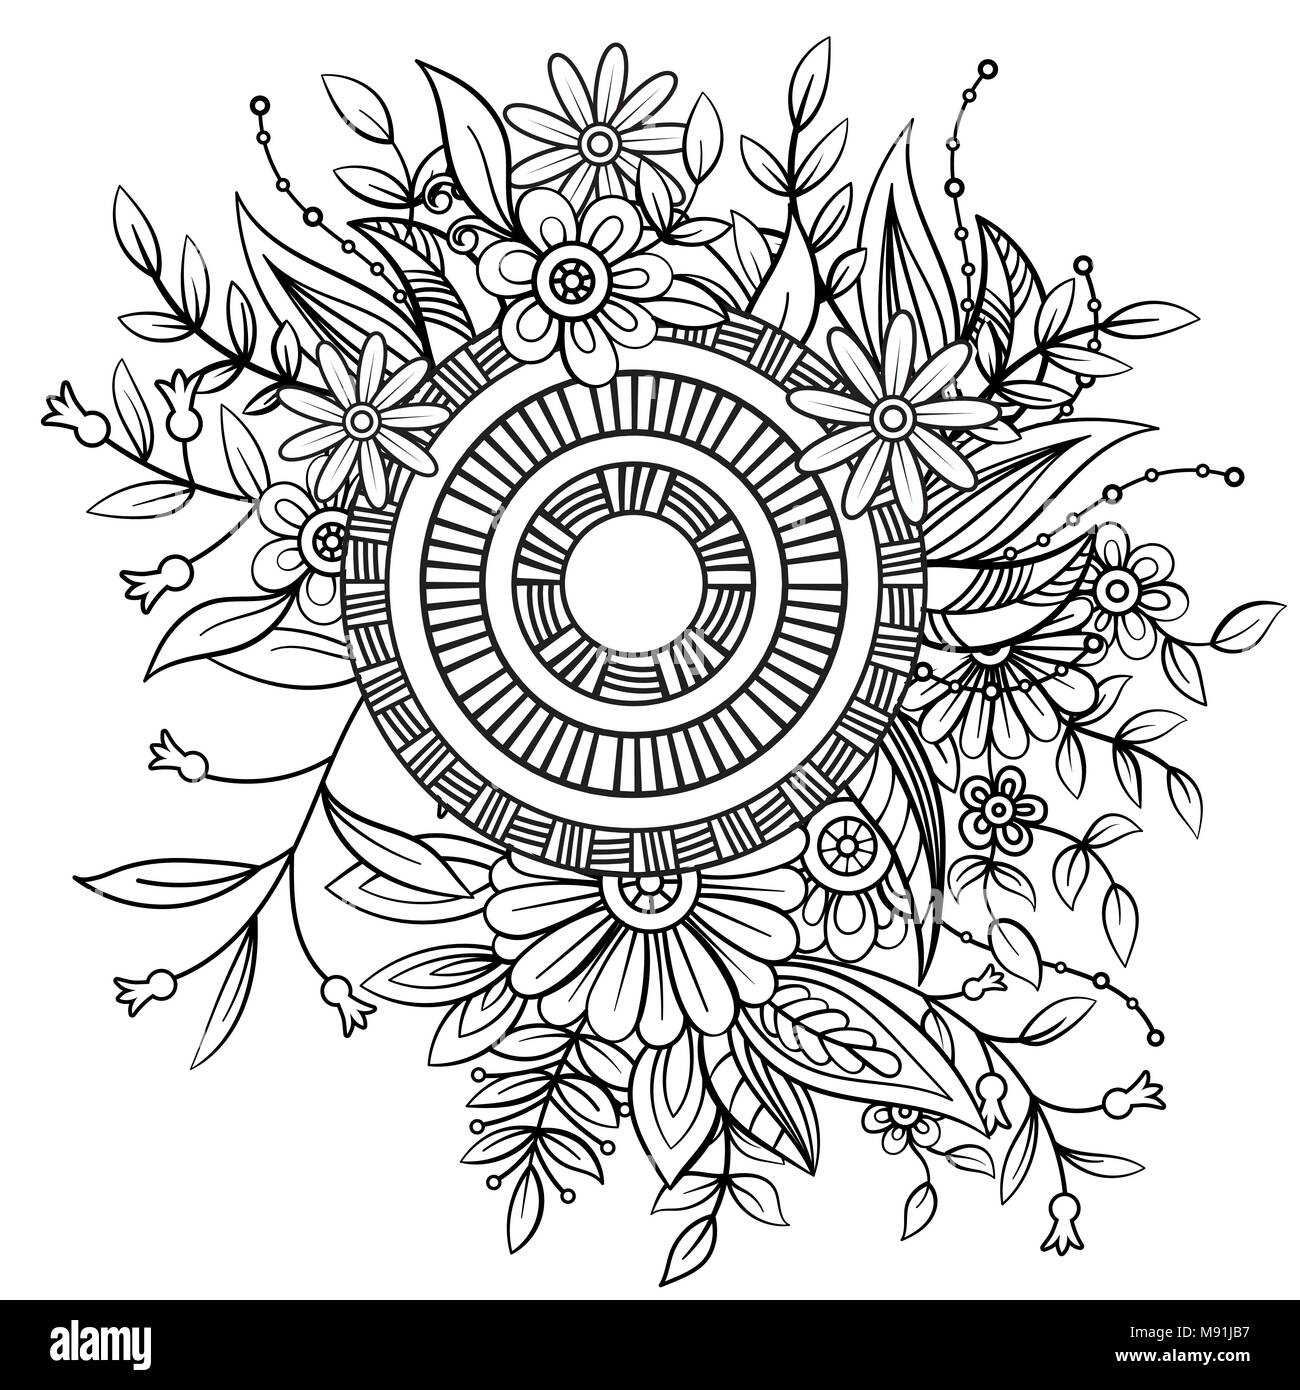 Floral Mandala Pattern In Black And White Adult Coloring Book Page